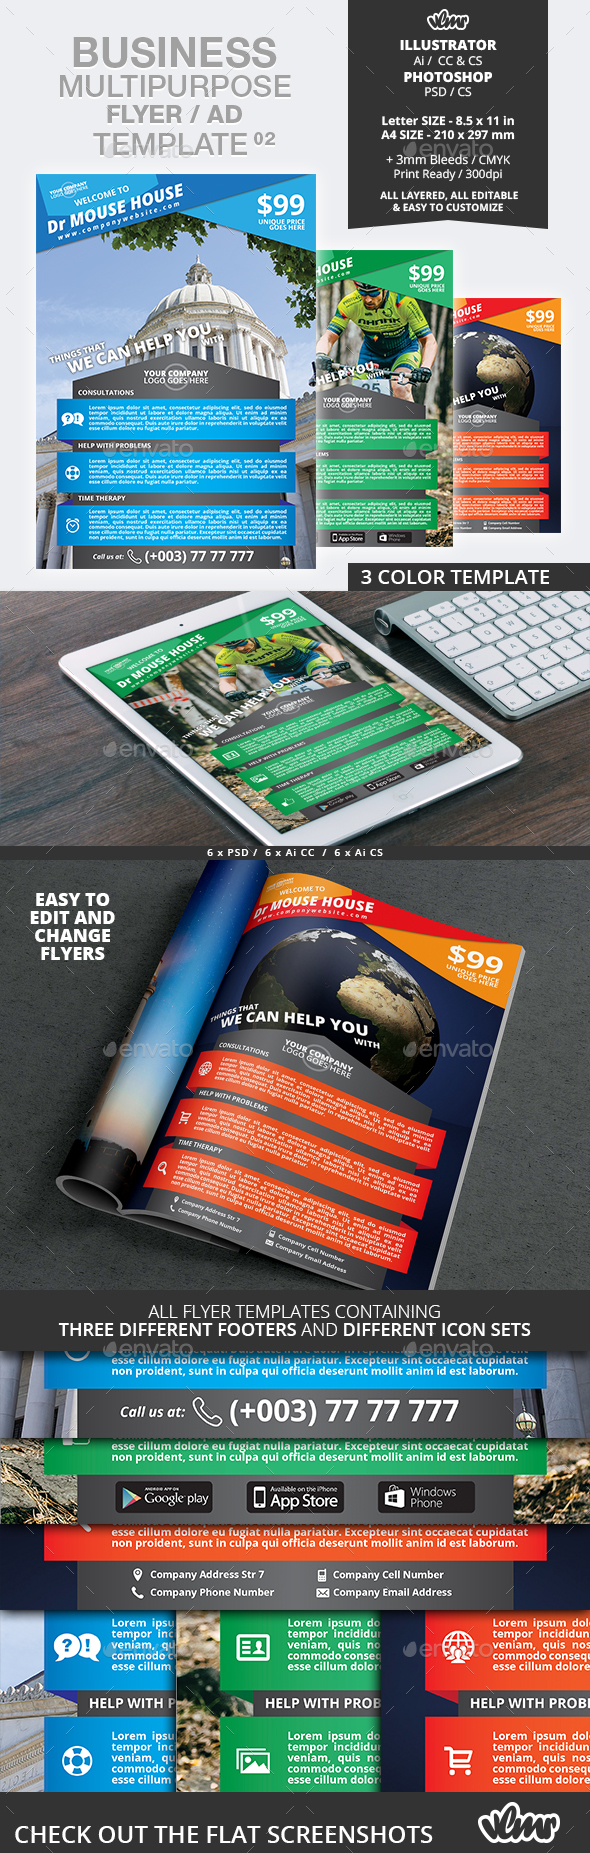 Business Multipurpose Flyer / Ad Template 02 - Corporate Flyers